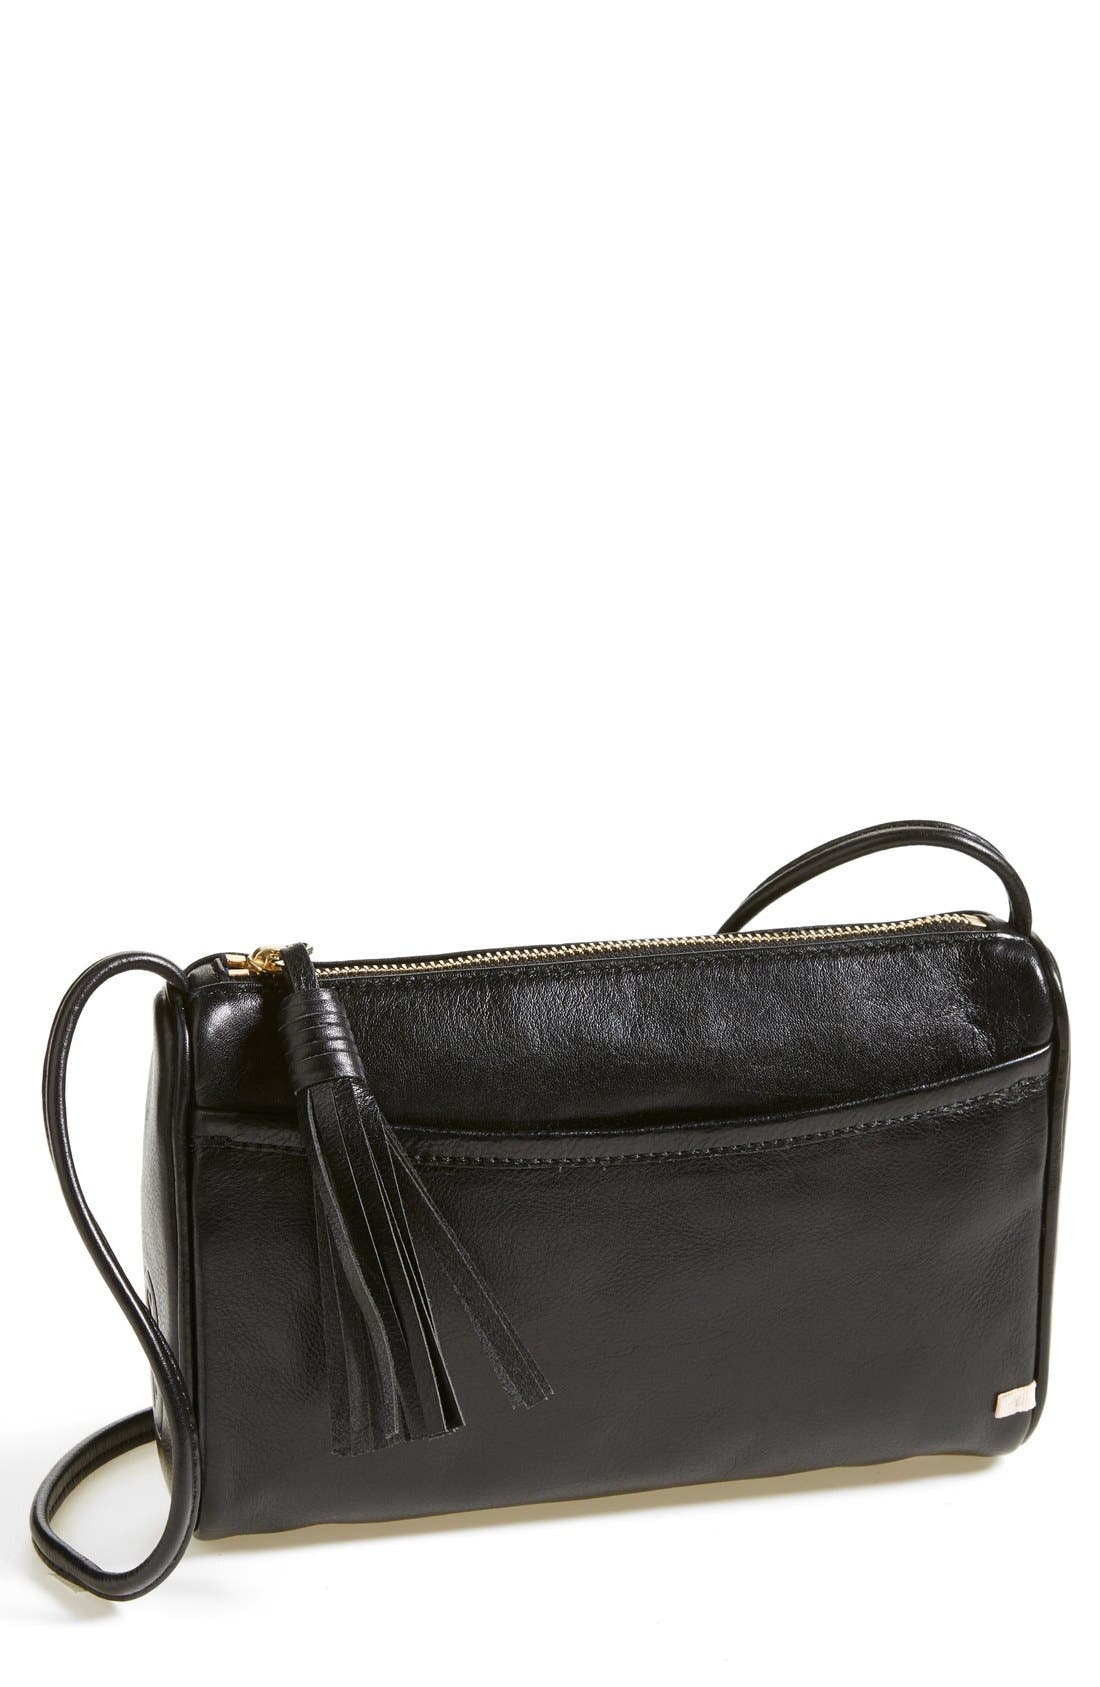 Alternate Image 1 Selected - SJP 'Crosstown' Crossbody Bag